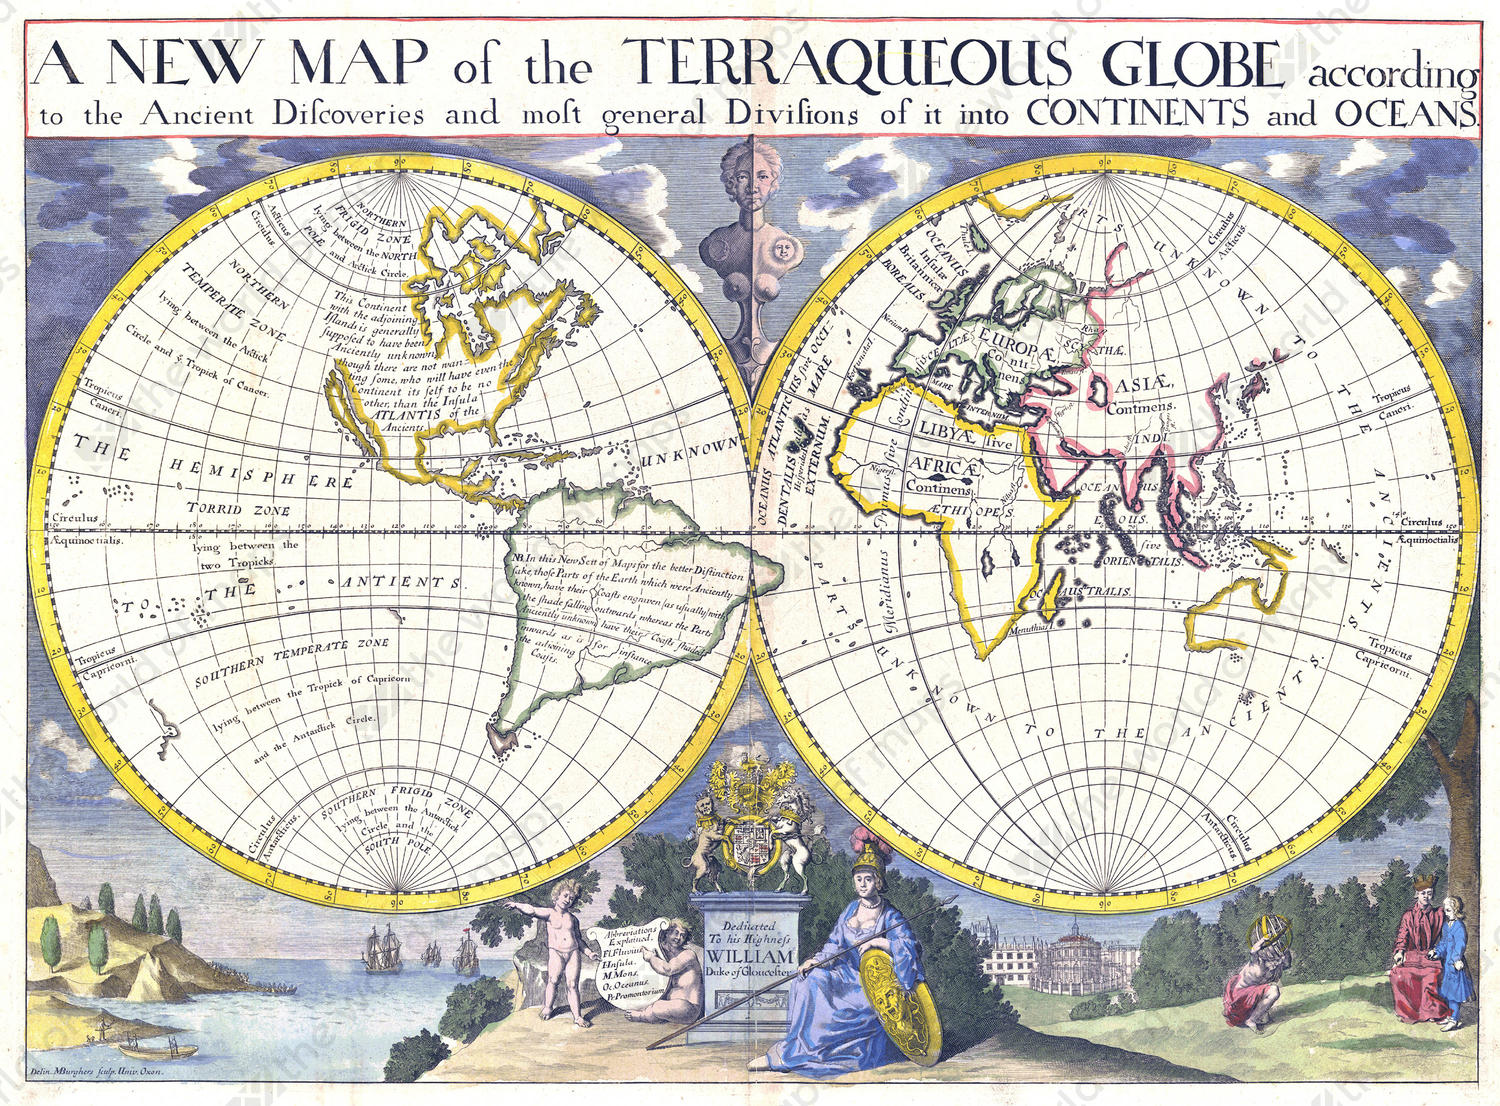 Digital World Map year 1700 Edward Wells | The World of Maps.com